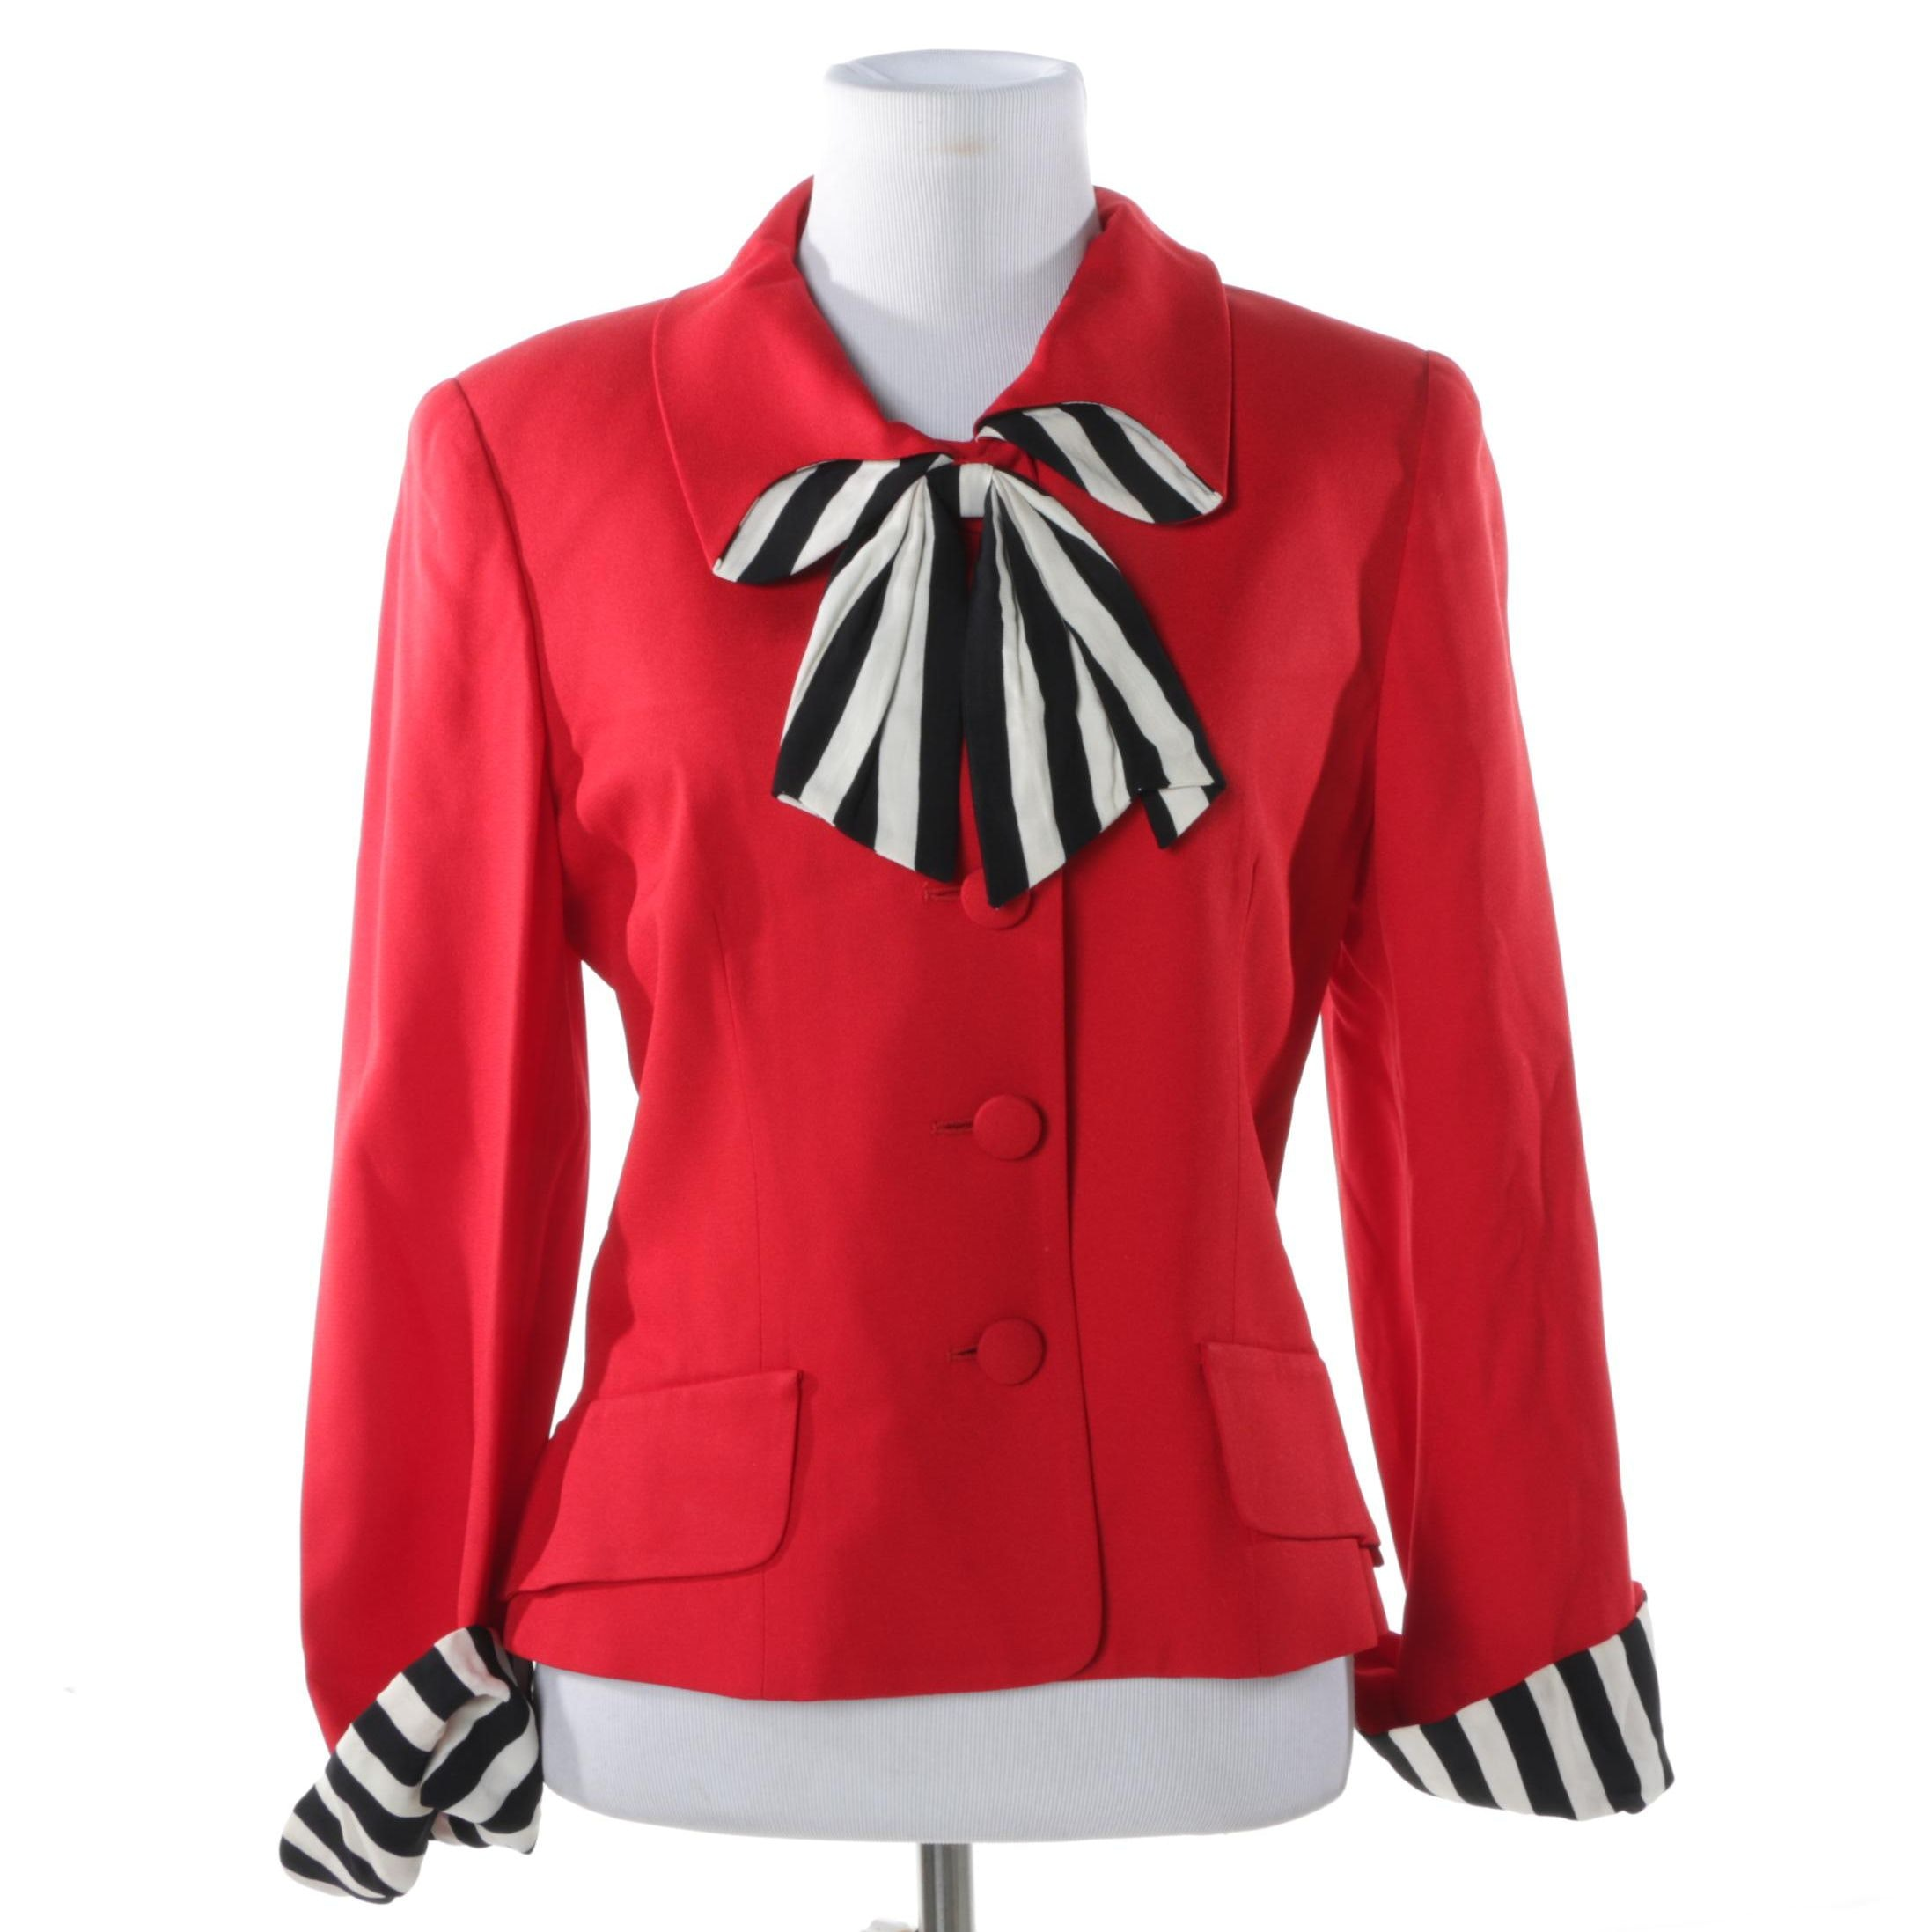 Moschino Cheap and Chic Red Jacket with Striped Accents